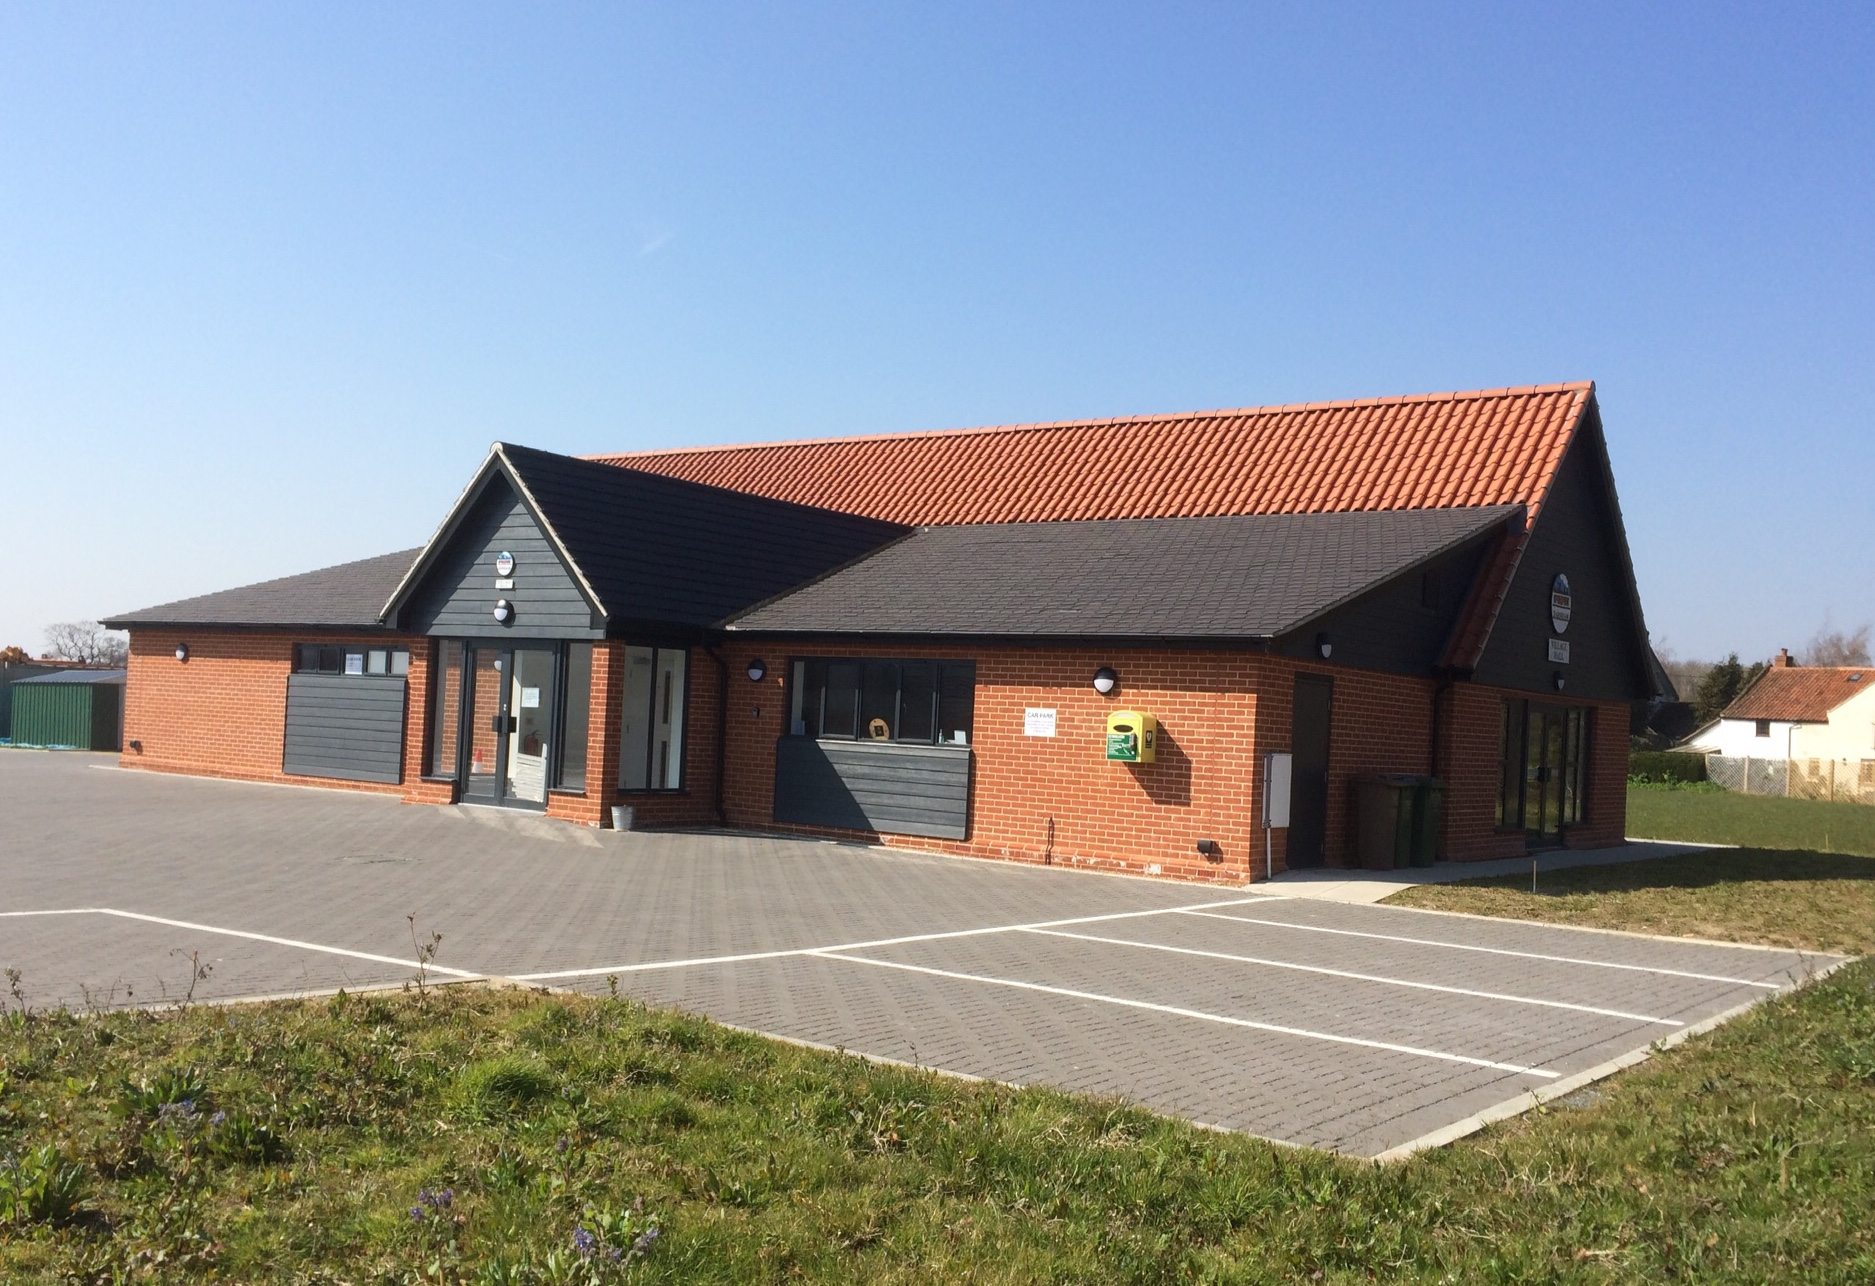 The exterior of the new village hall